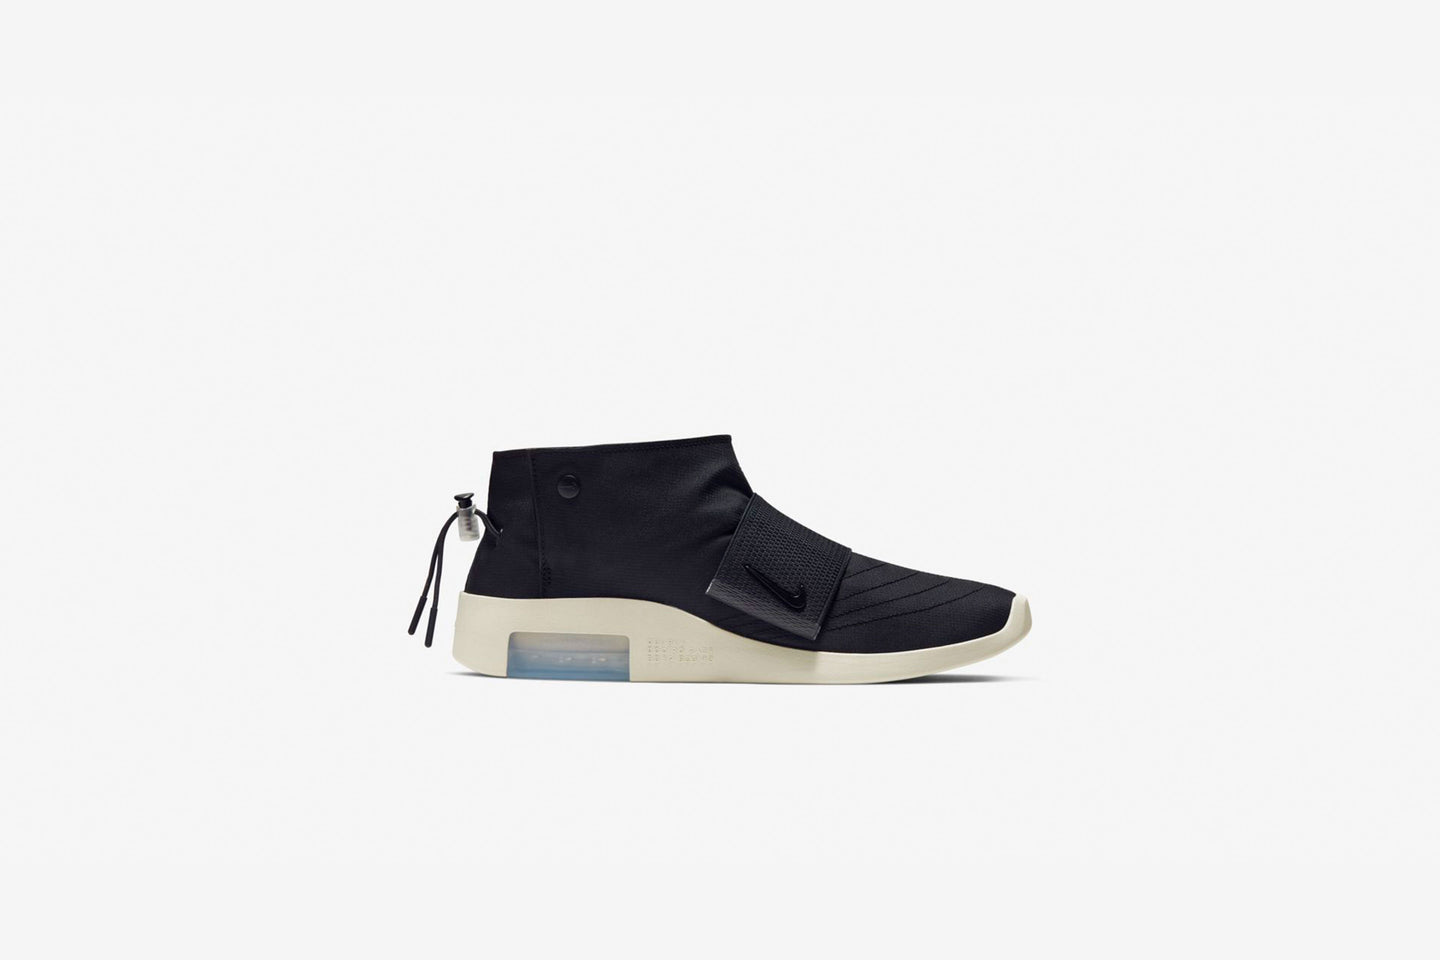 Air Fear of God Moc - Air Fear of God Moc